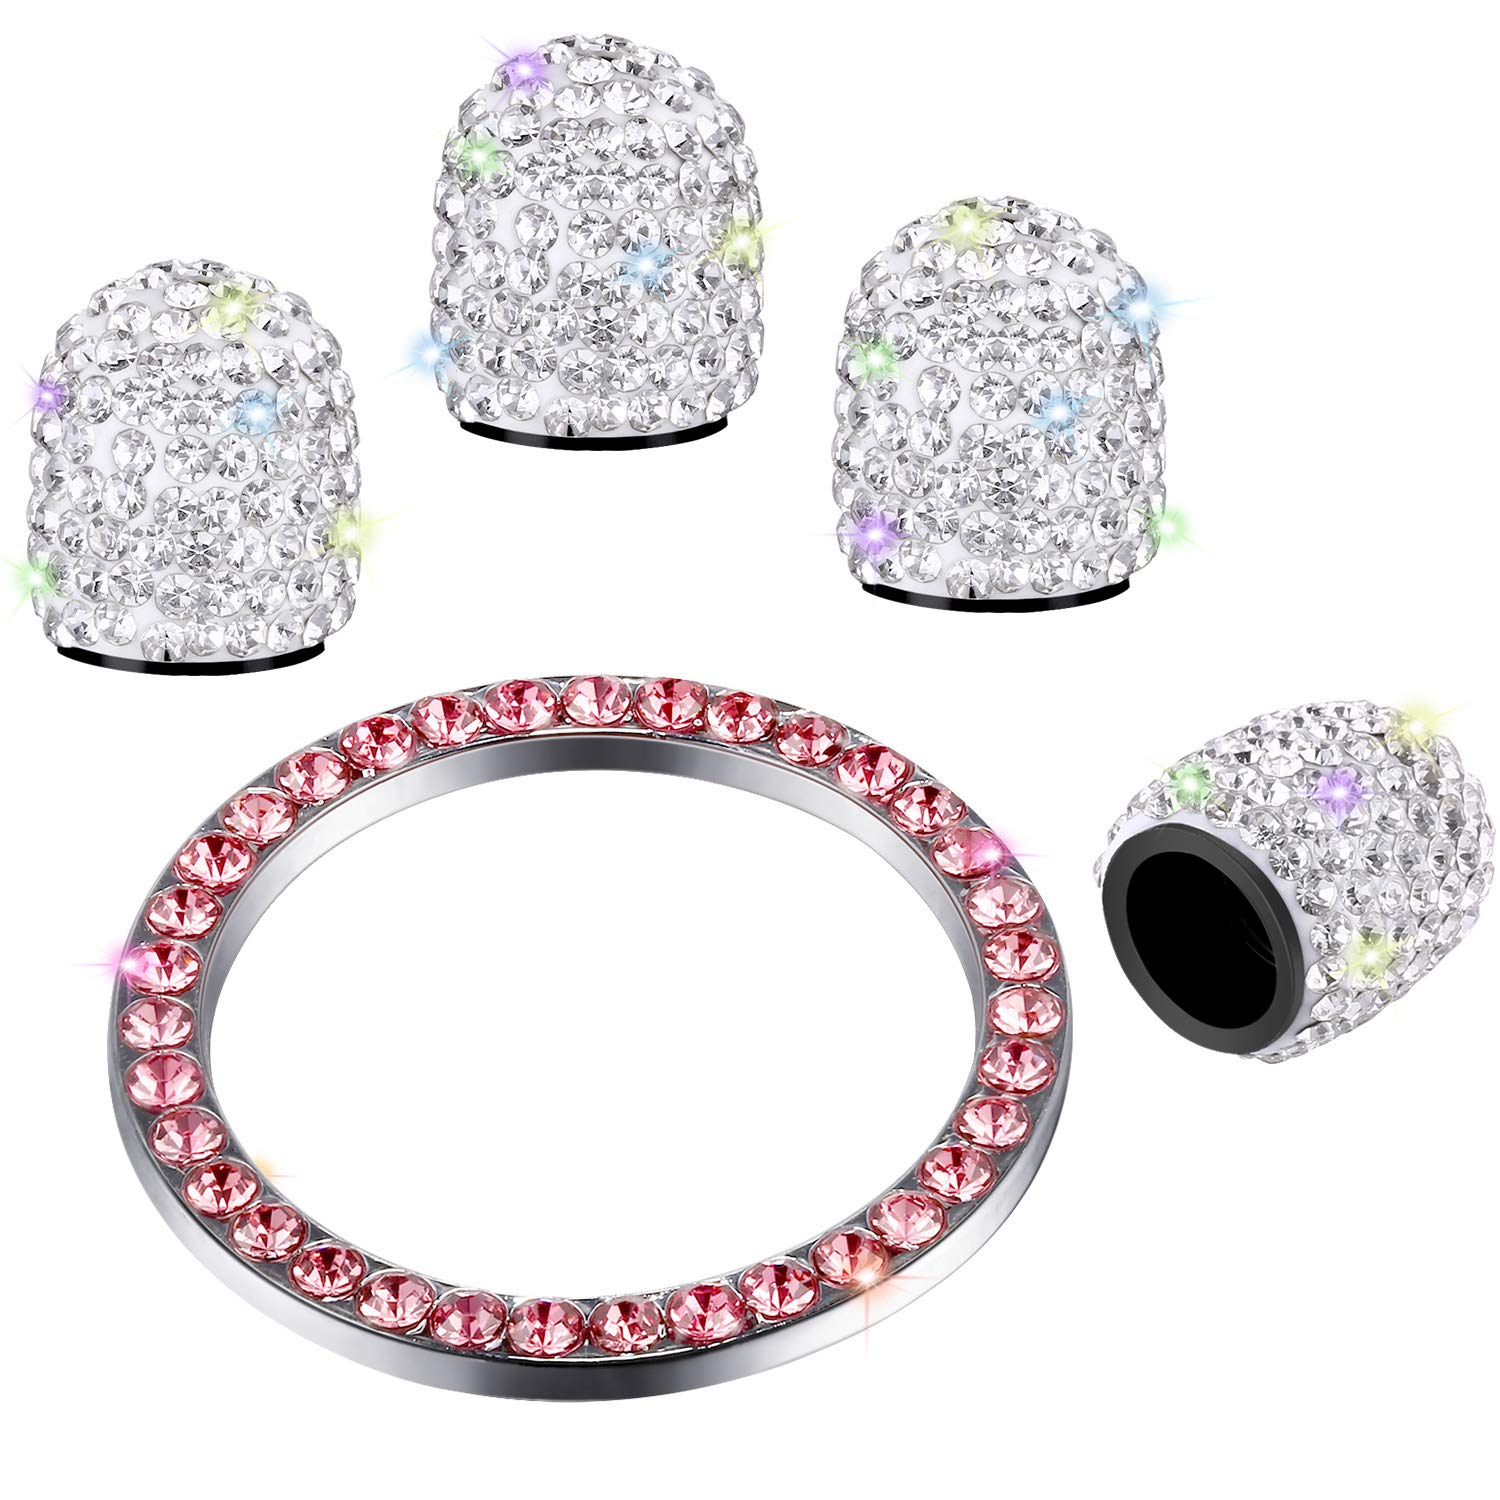 Valve Stem Caps 4 Pack Handmade Crystal Rhinestone Universal Tire Valve Dust Caps Bling Car Accessories with 1 Piece Ring Emblem Sticker for Auto Start Engine Ignition Button Key and Knobs (WhitePink)